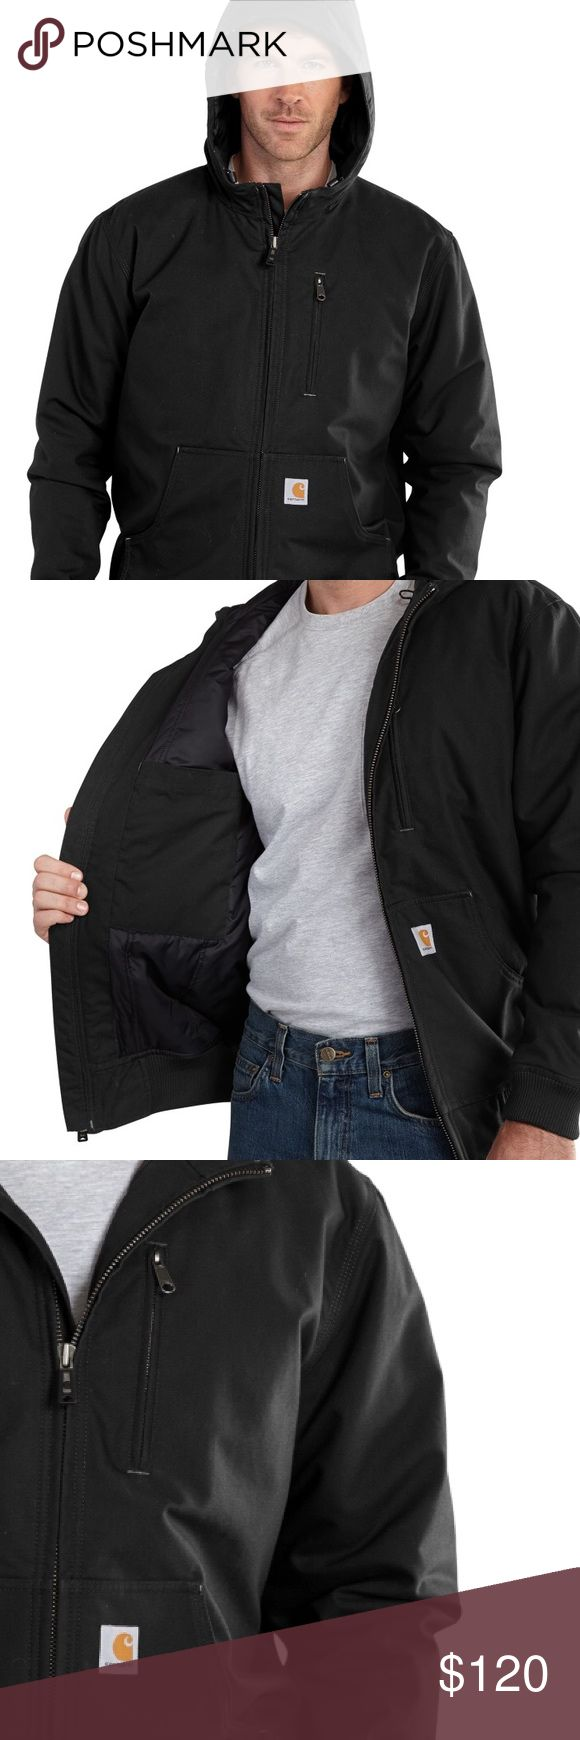 ⭐️HP!!!! NWT Mens carhartt jacket New with tags Men's, Water Repellent, 3M™ Thinsulate™ Insulated Jacket by carhart in black with embroidery on chest (can easily be taken off)   8.5-ounce, 60% cotton/40% polyester canvas 30% lighter and ounce-for-ounce as durable as sandstone Nylon lining quilted to 80-gram 3M™ Thinsulate™  Insulation in body and sleeves  Attached quilt-lined hood with draw-cord closure  Two inside pockets  Triple-stitched main seams  Size large   Bought for $140 - price…